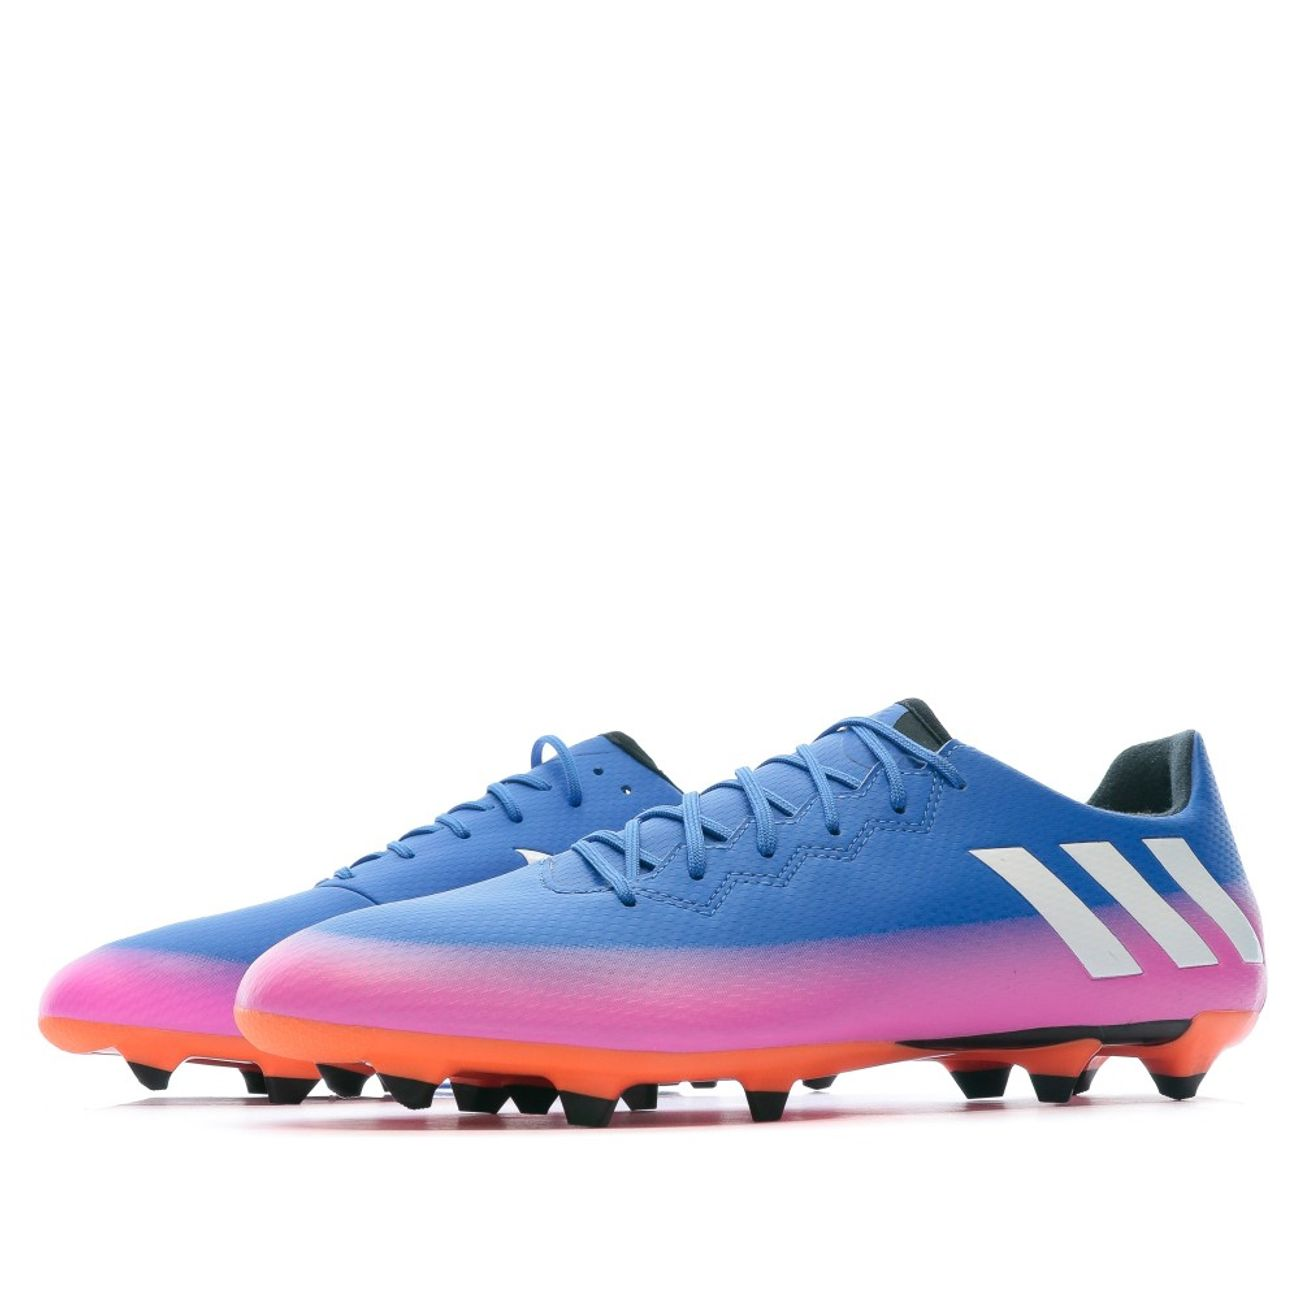 Football homme ADIDAS Chaussures adidas Messi 16.3 FG